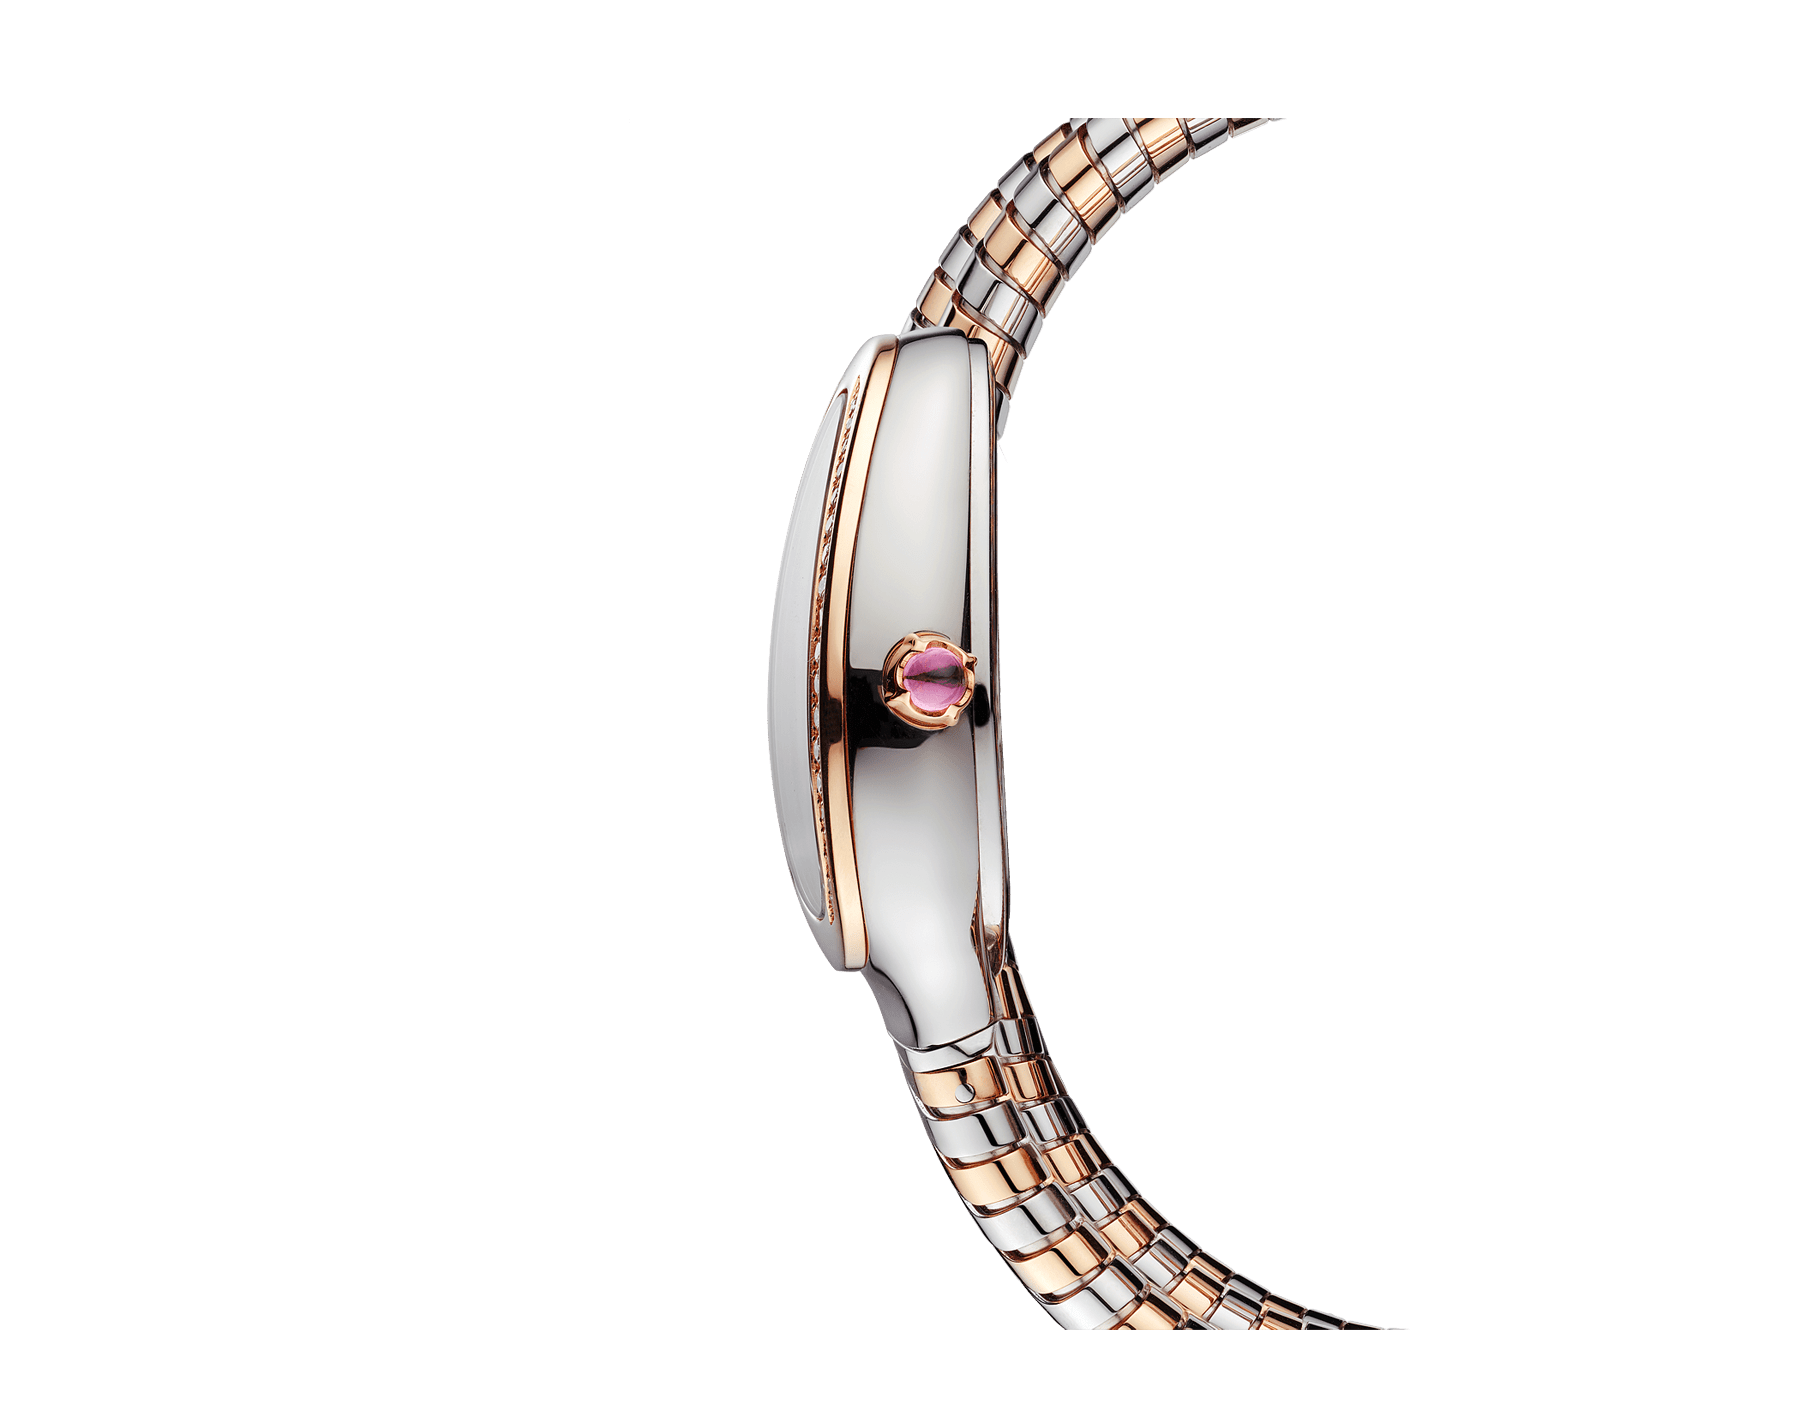 Serpenti Tubogas double spiral watch with stainless steel case, 18 kt rose gold bezel set with diamonds, silver opaline dial with guilloché soleil treatment, stainless steel and 18 kt rose gold bracelet 103149 image 3